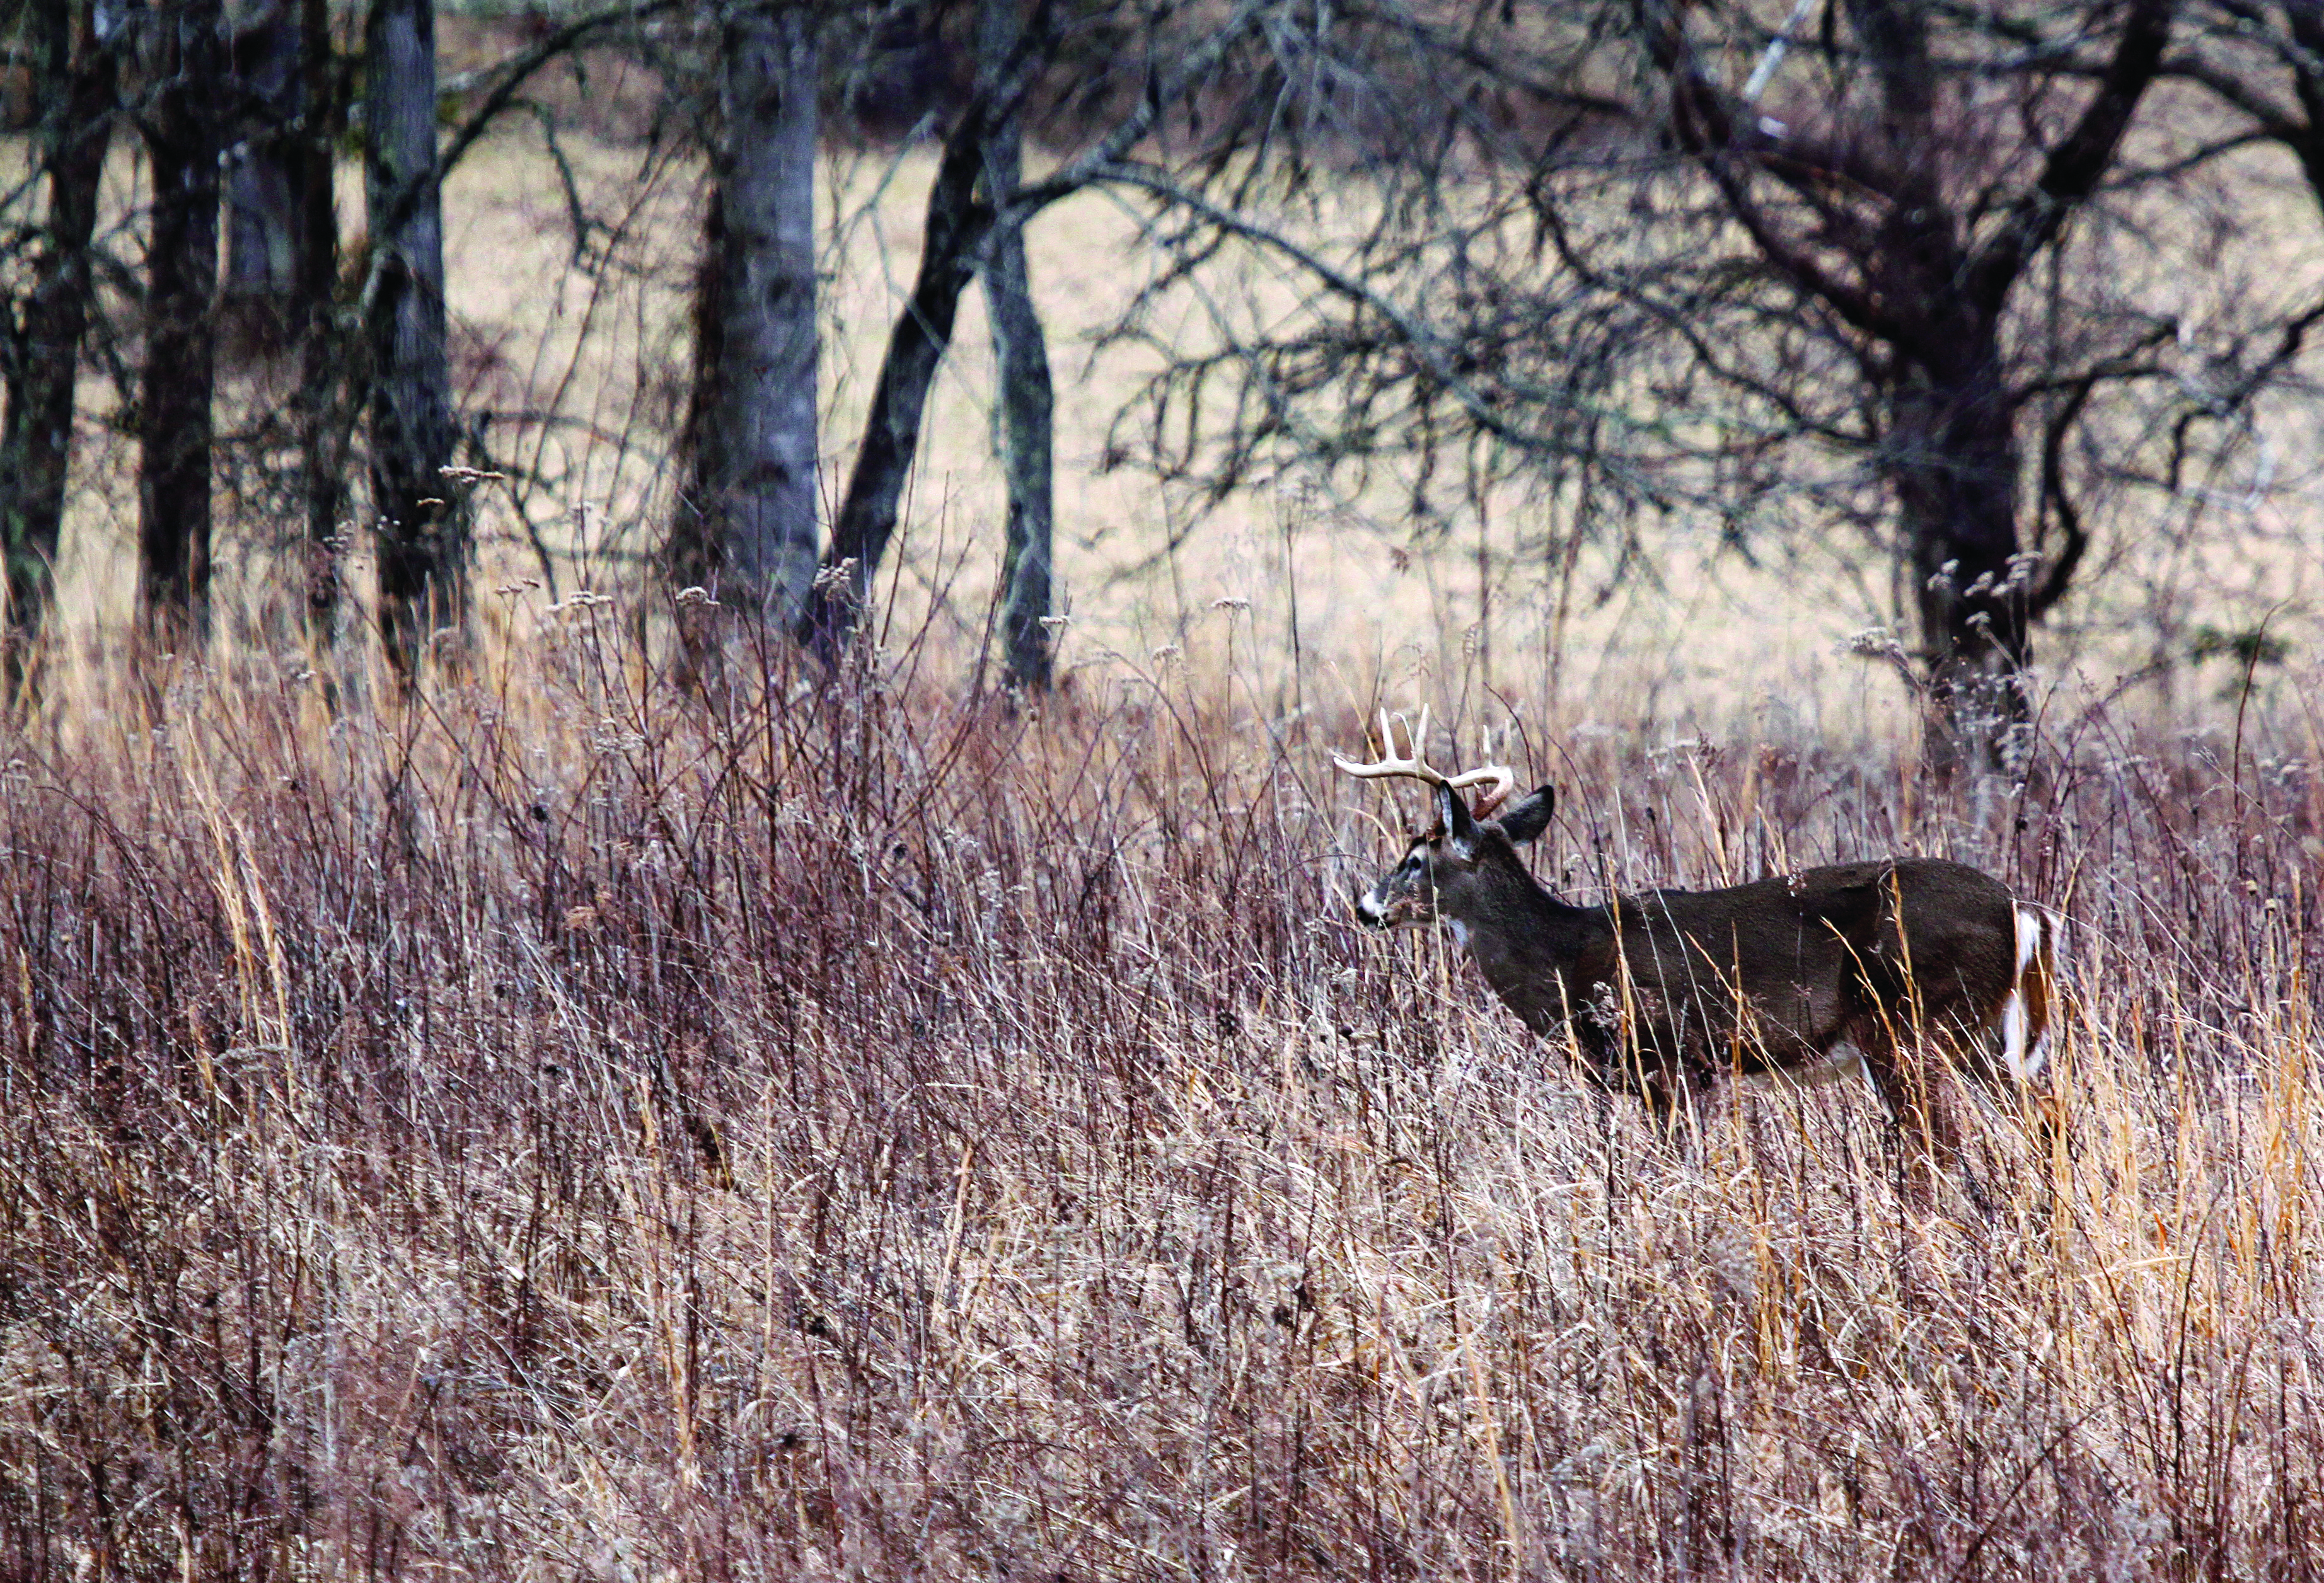 When hunting the rut, look for does. Bucks will be following them throughout the day.